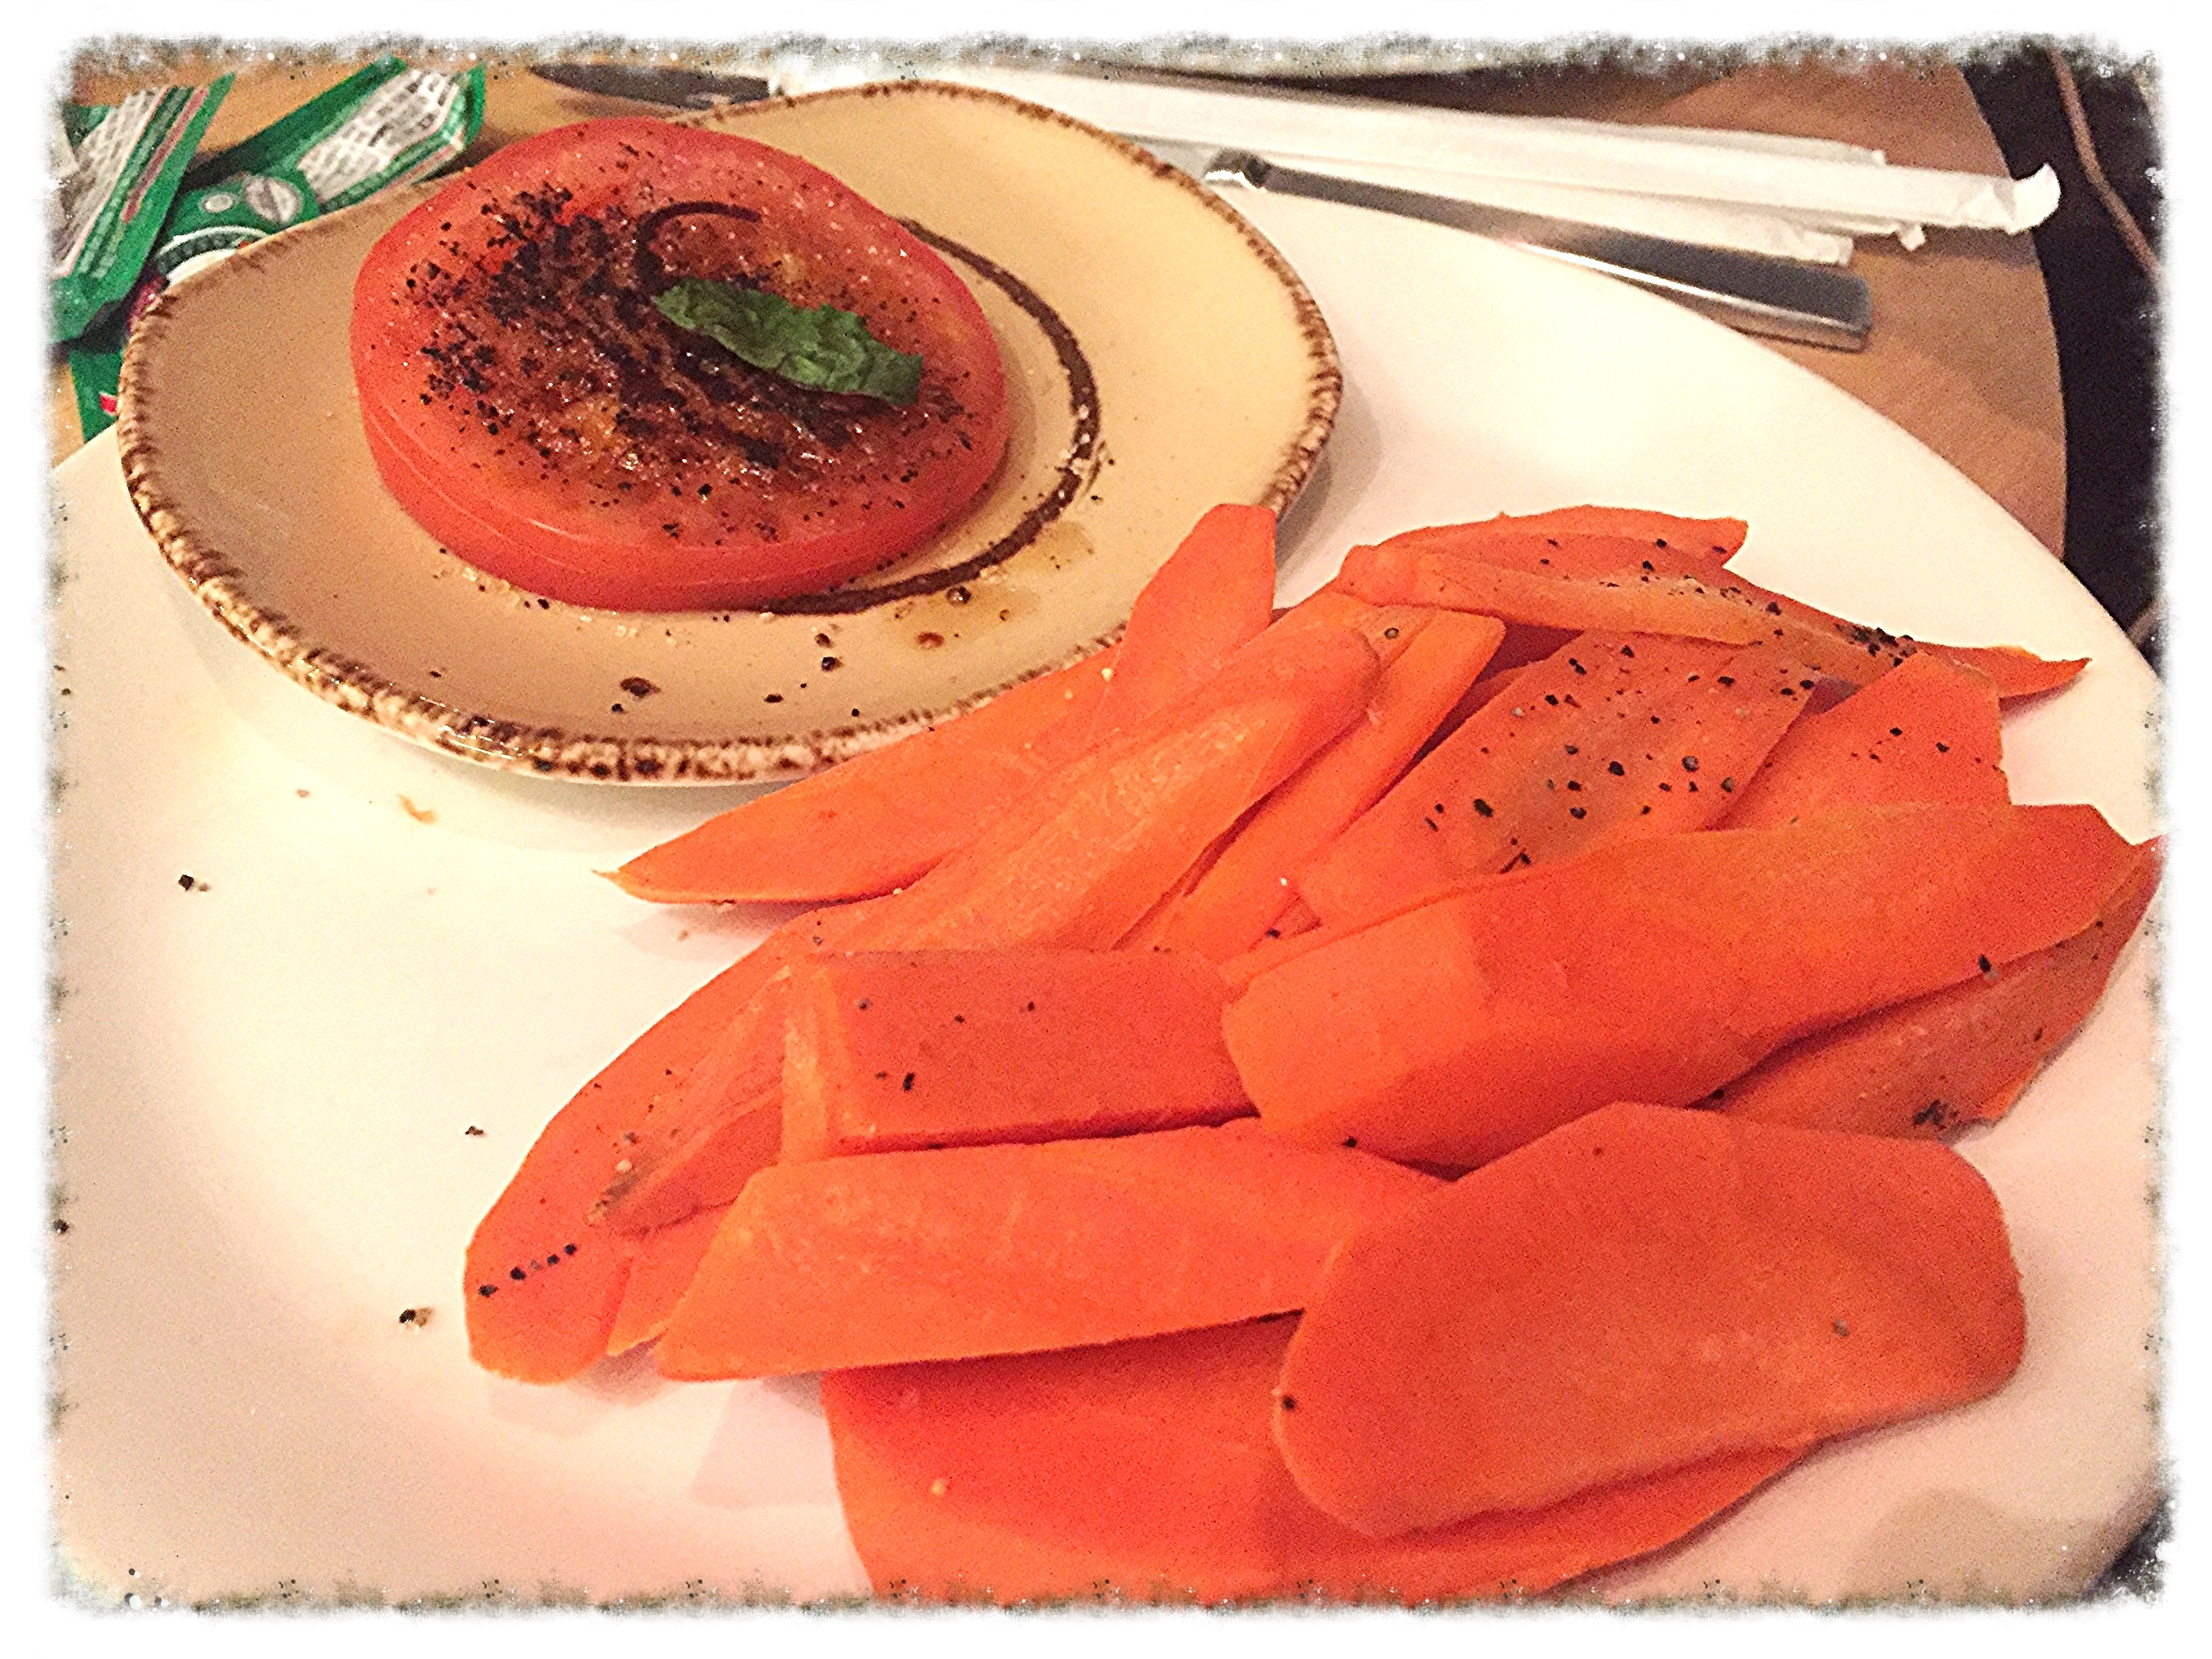 Tomato with olive oil, cracked pepper and salt and carrots from Bacchanal Buffet